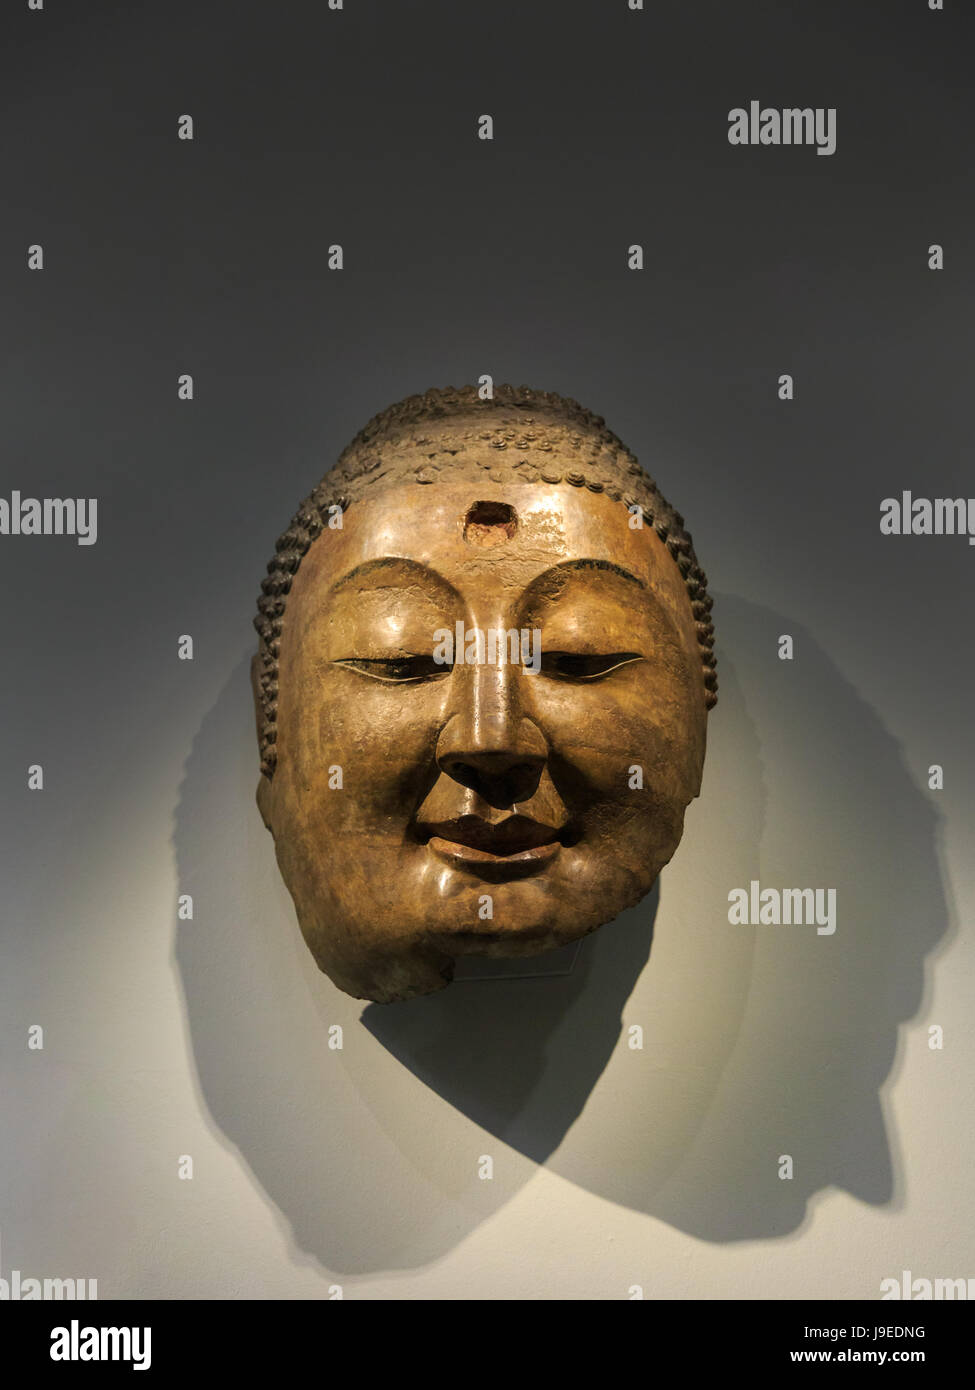 Head of Buddha from the Northern Qi Dynasty of China on display, V&A Museum, London - Stock Image